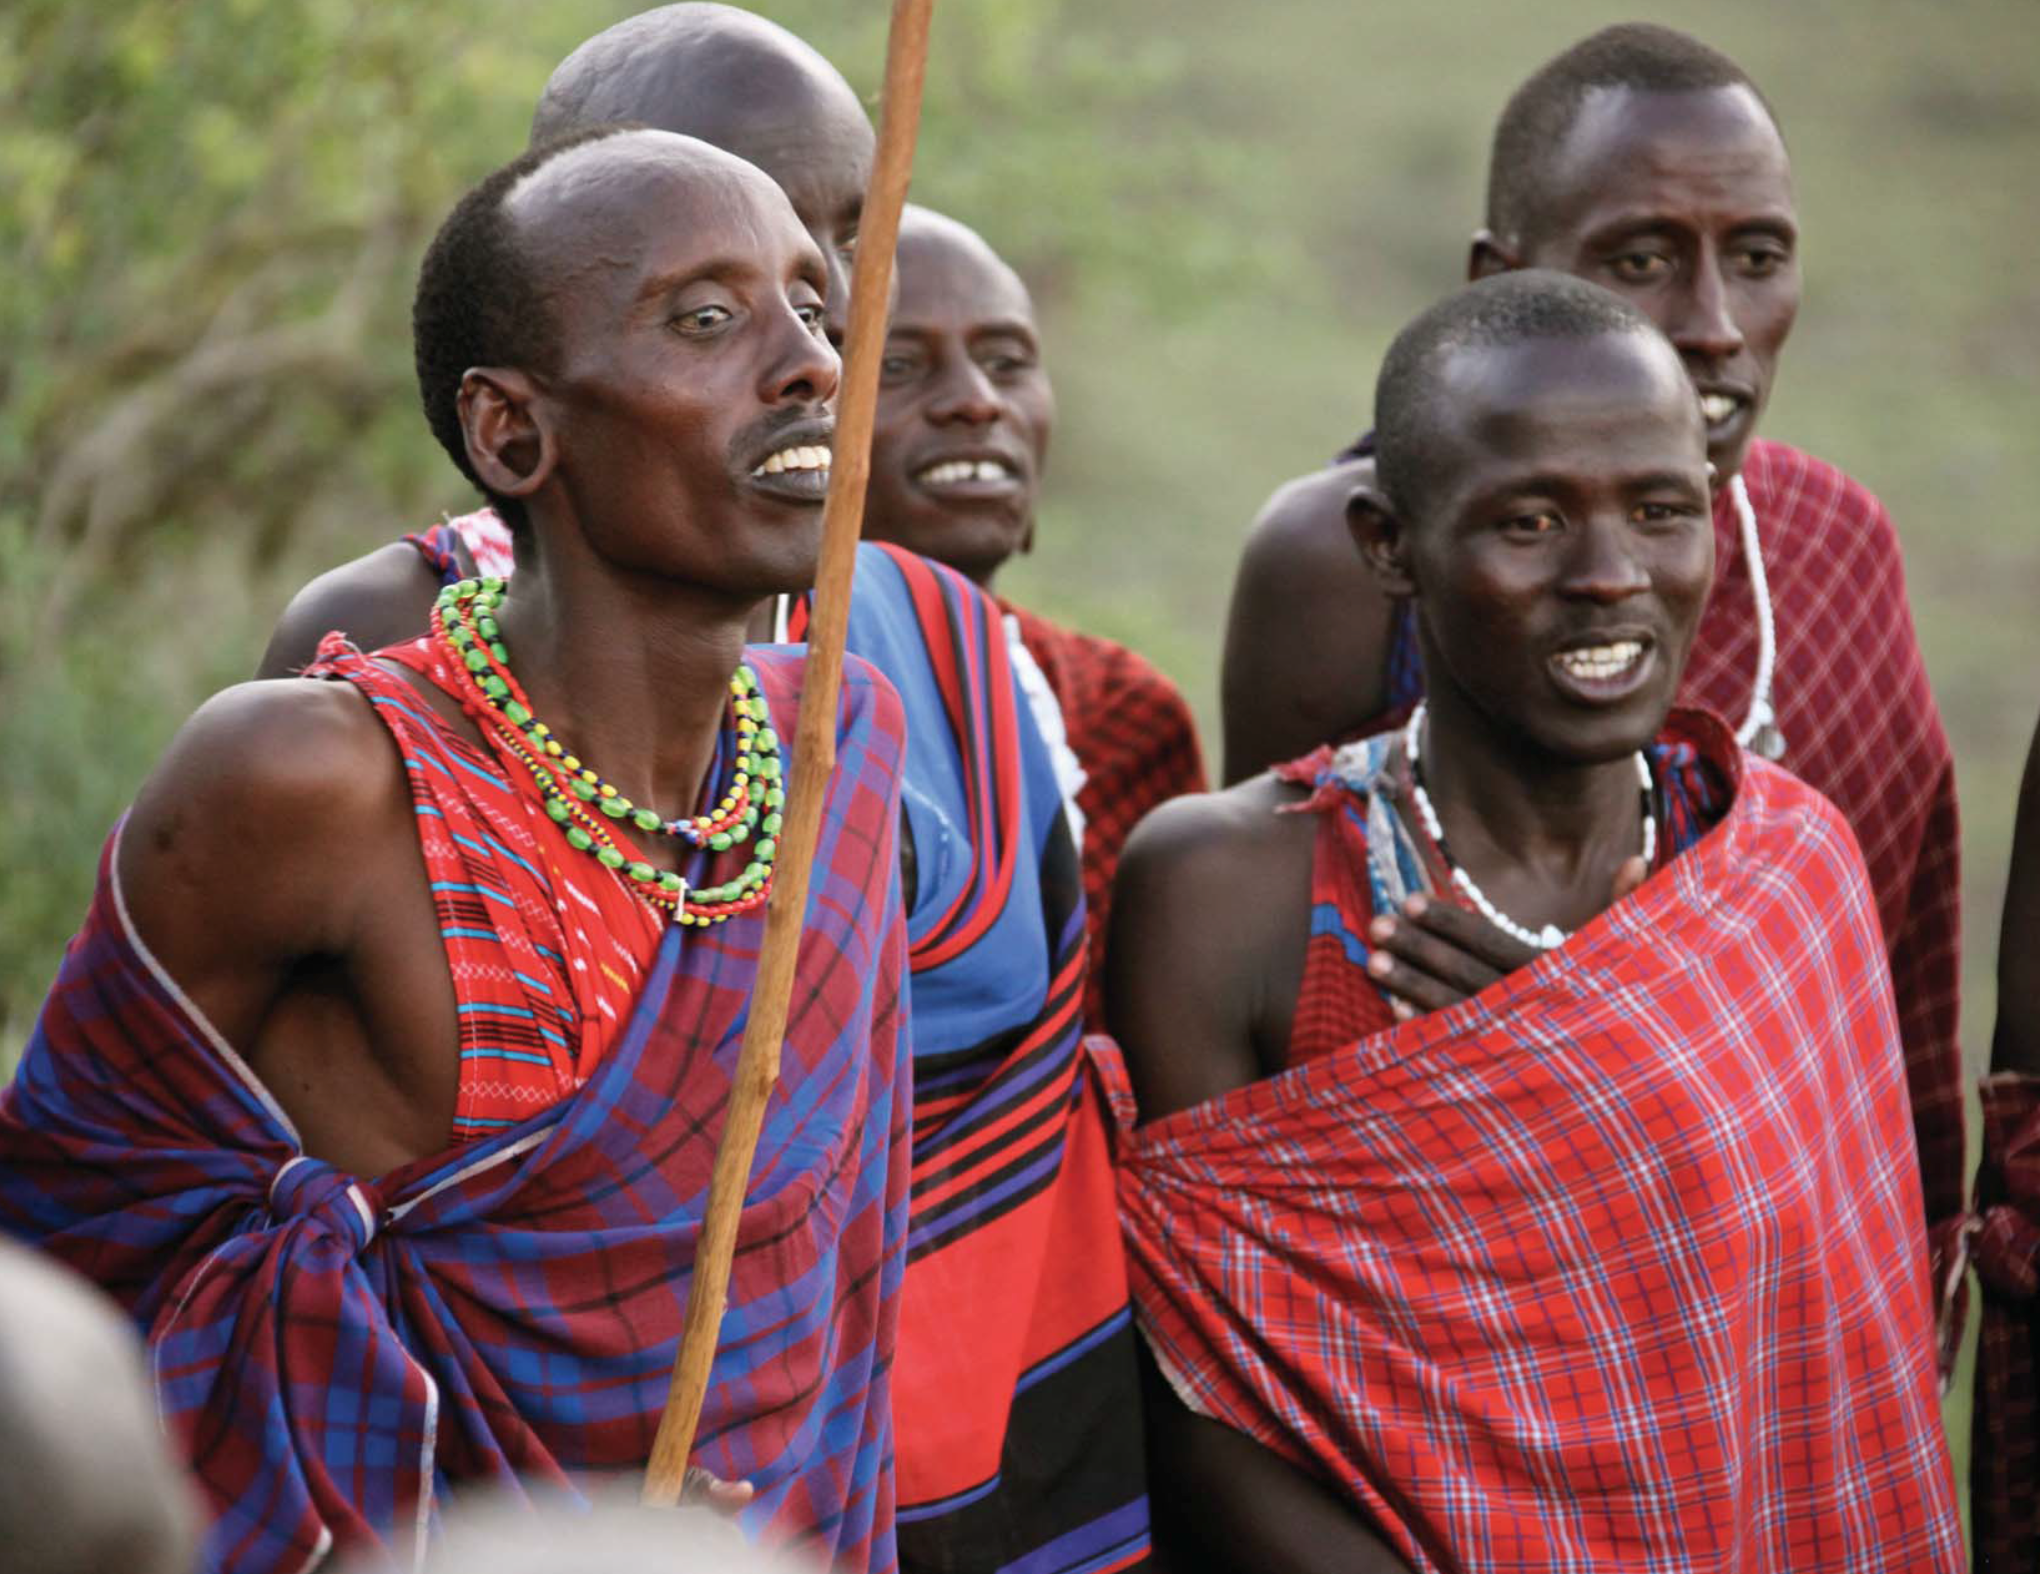 africa_photographic_safari-tanzania- masai